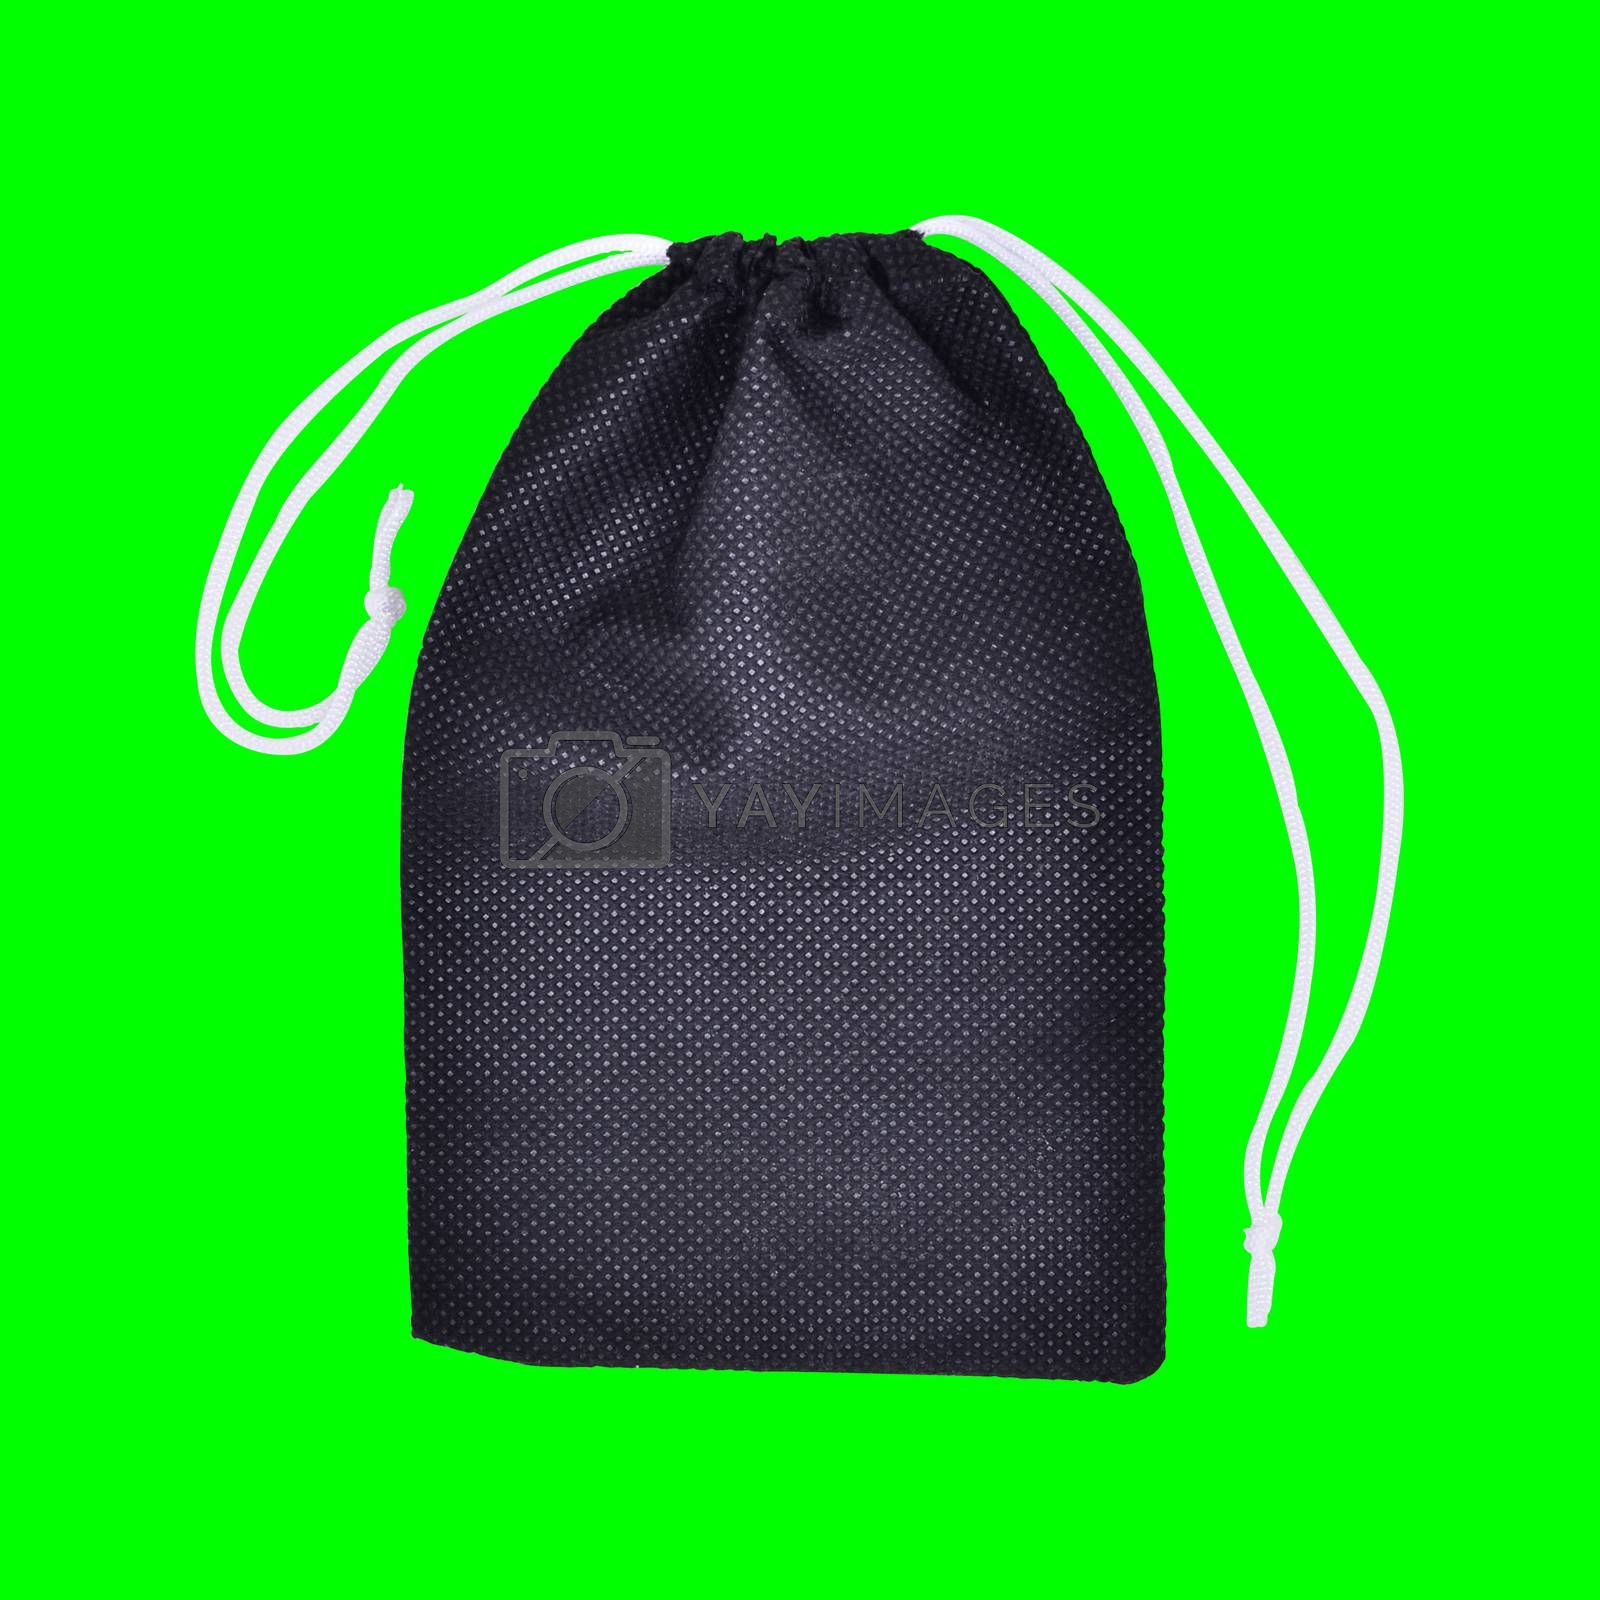 Black Bags White Rope Fabric on green screen